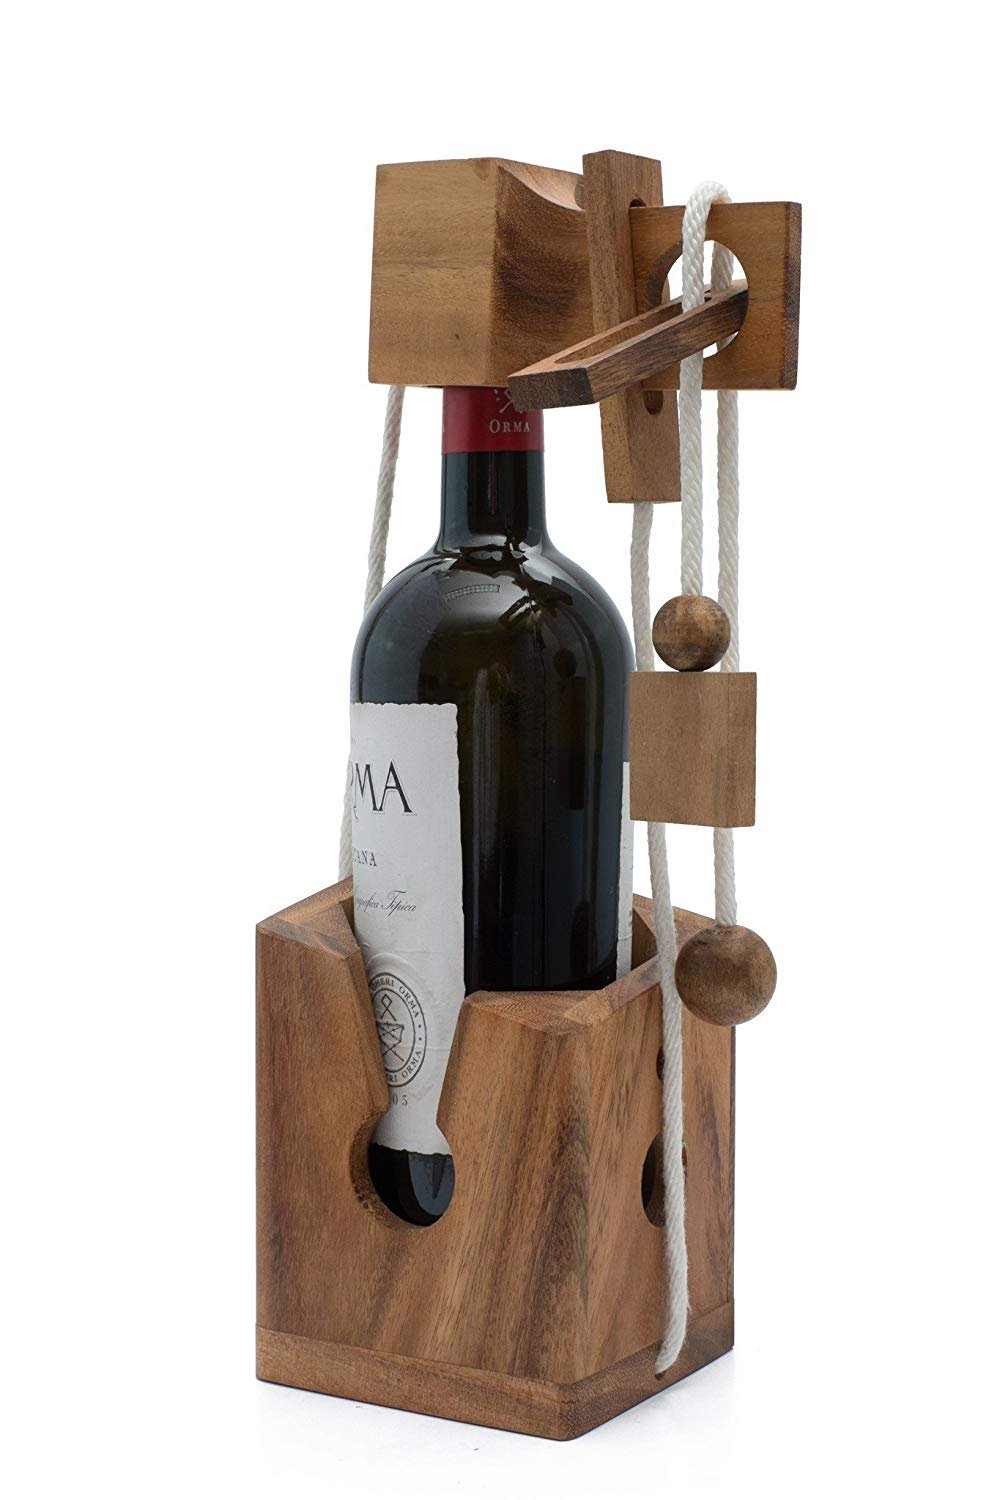 Wine Challenge: Deluxe Wine Bottle Puzzle Gift for Parties - Bottle Lock Challenge Brain Teaser for Adults from SiamMandalay with SM Gift Box(Pictured)(Bottle Not Included) by SiamMandalay